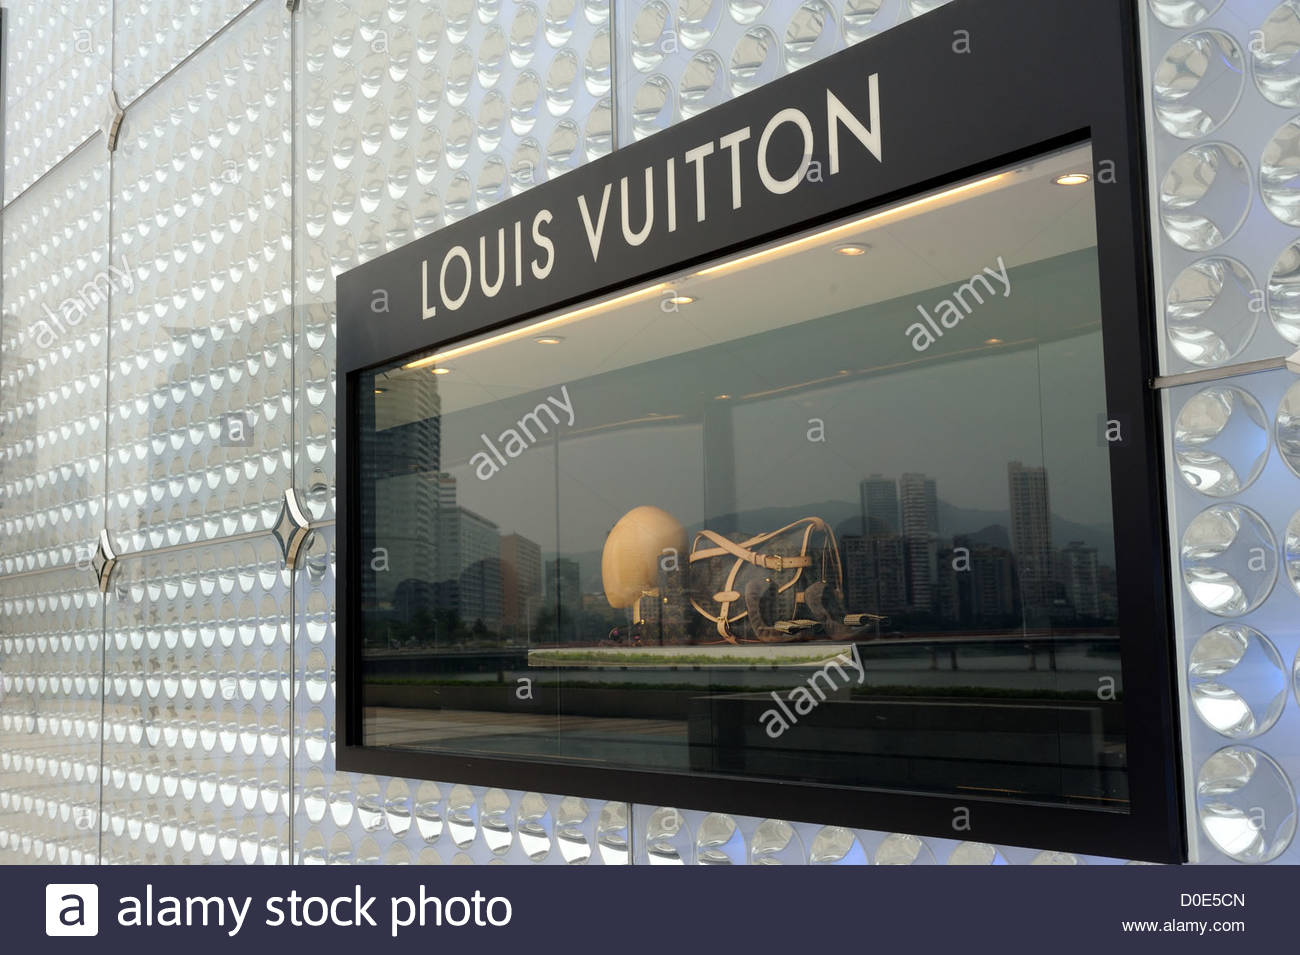 029c96ba4ab Macau S.A.R, China, Louis Vuitton store Stock Photo: 51942709 - Alamy